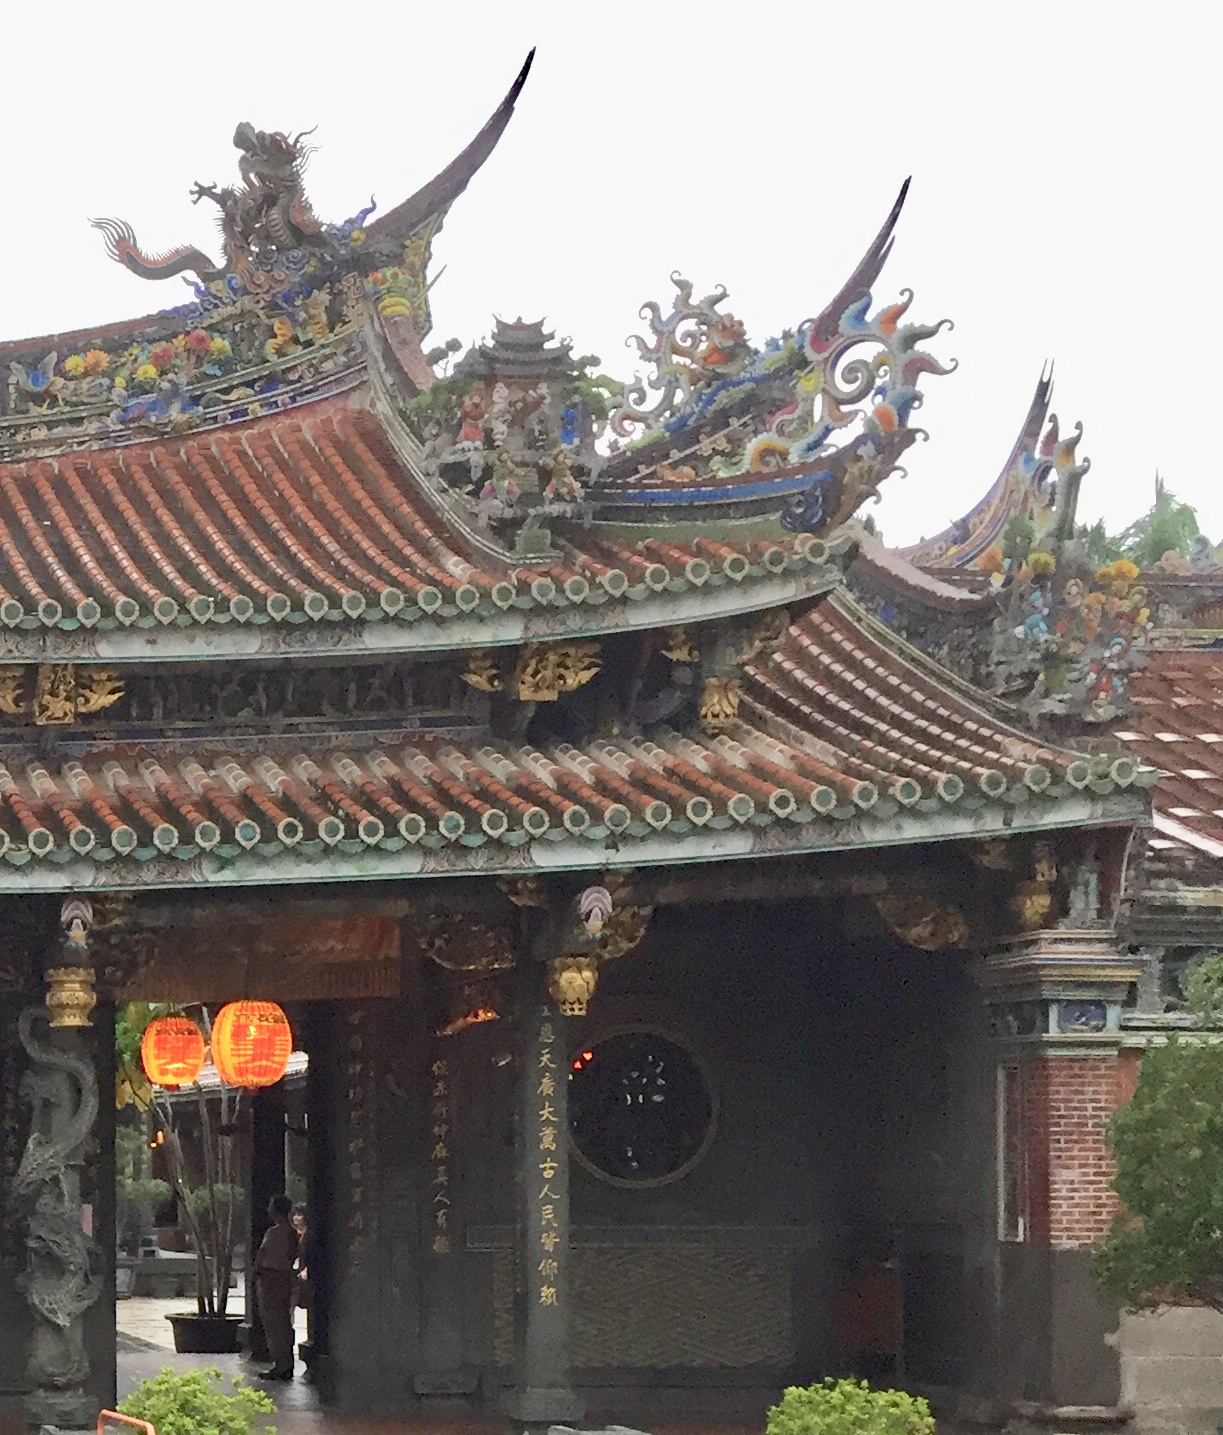 Decoration on top of the temple gate.